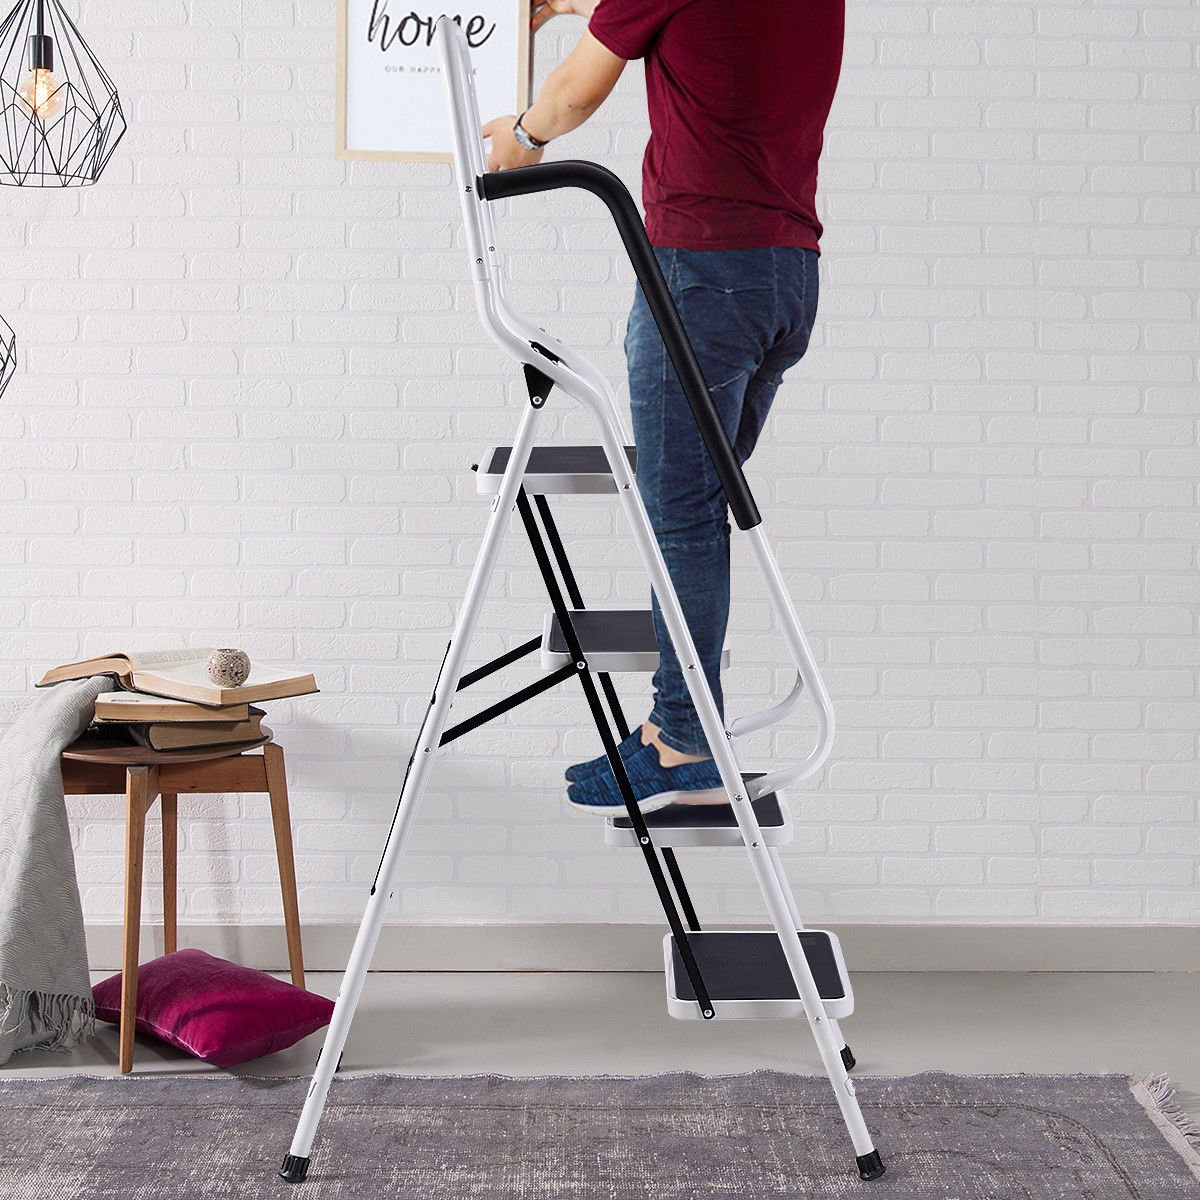 Giantex 2 in 1 Non-Slip Step Ladder Folding Stool w/Handrails and Tool Pouch Caddy (4 Step Ladder) by Giantex (Image #3)